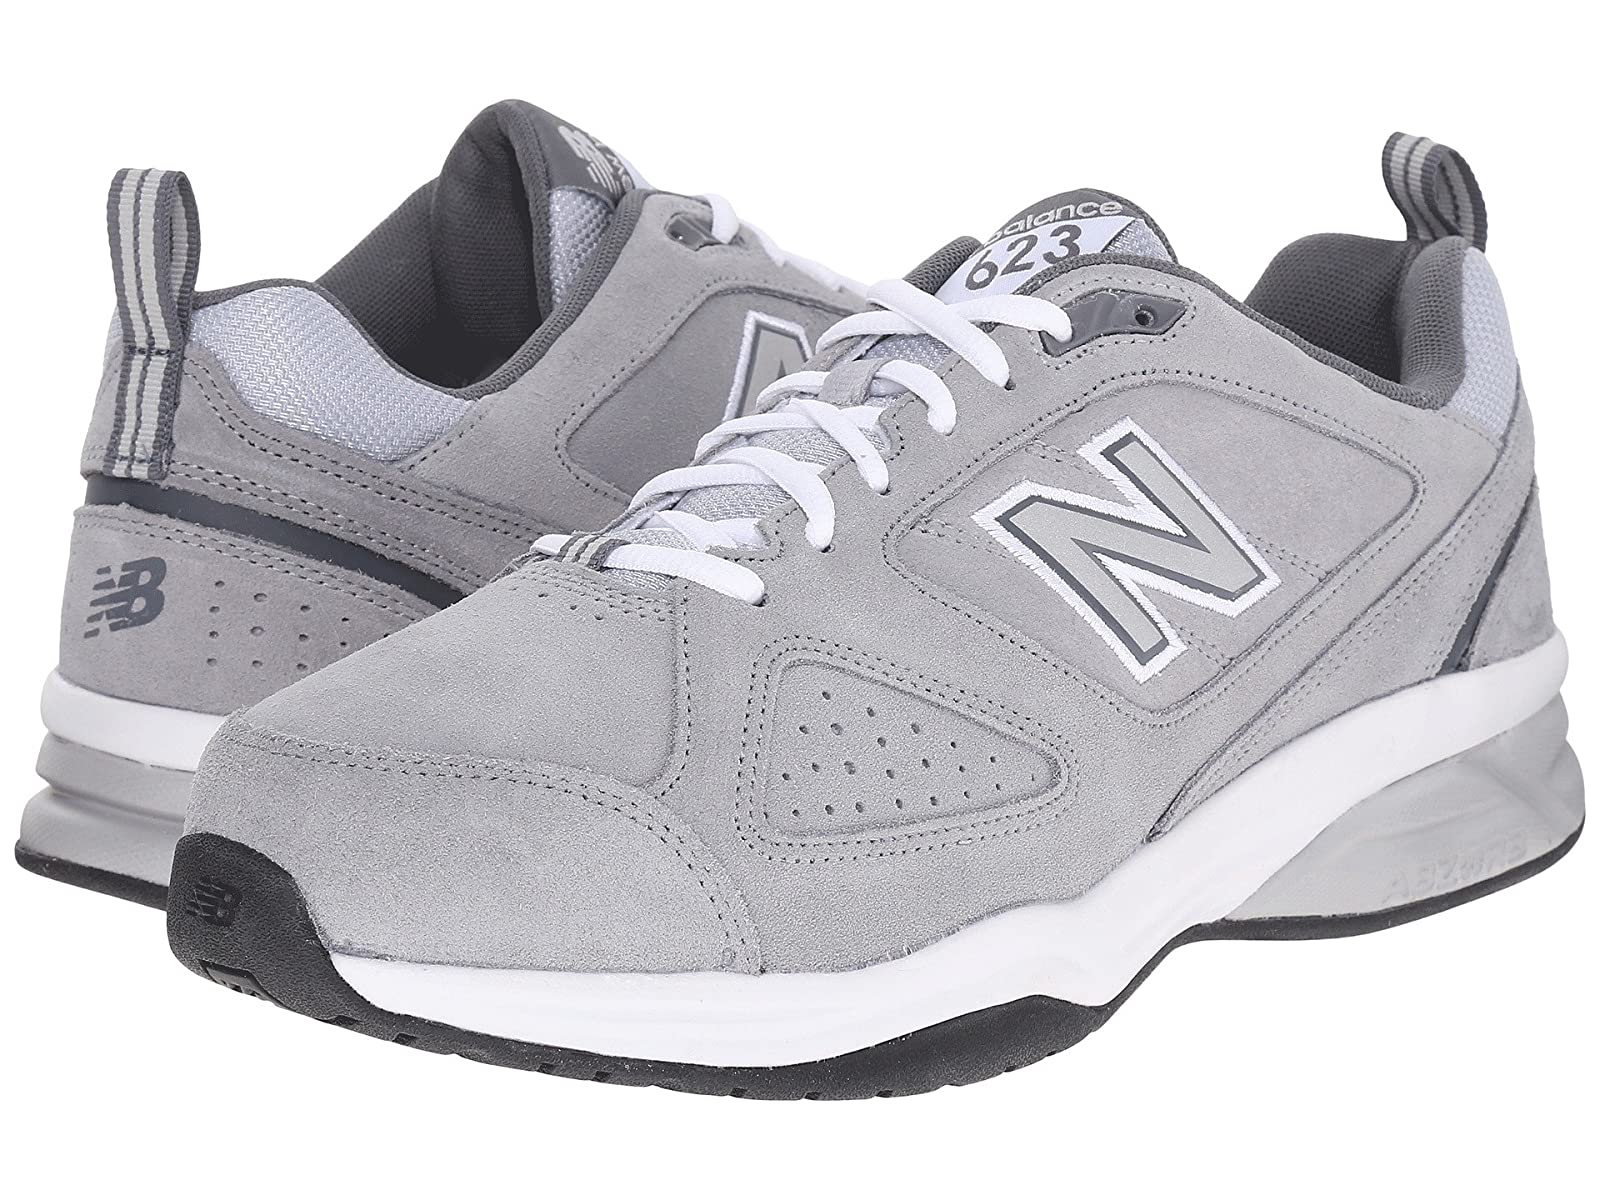 New Balance MX623v3Cheap and distinctive eye-catching shoes